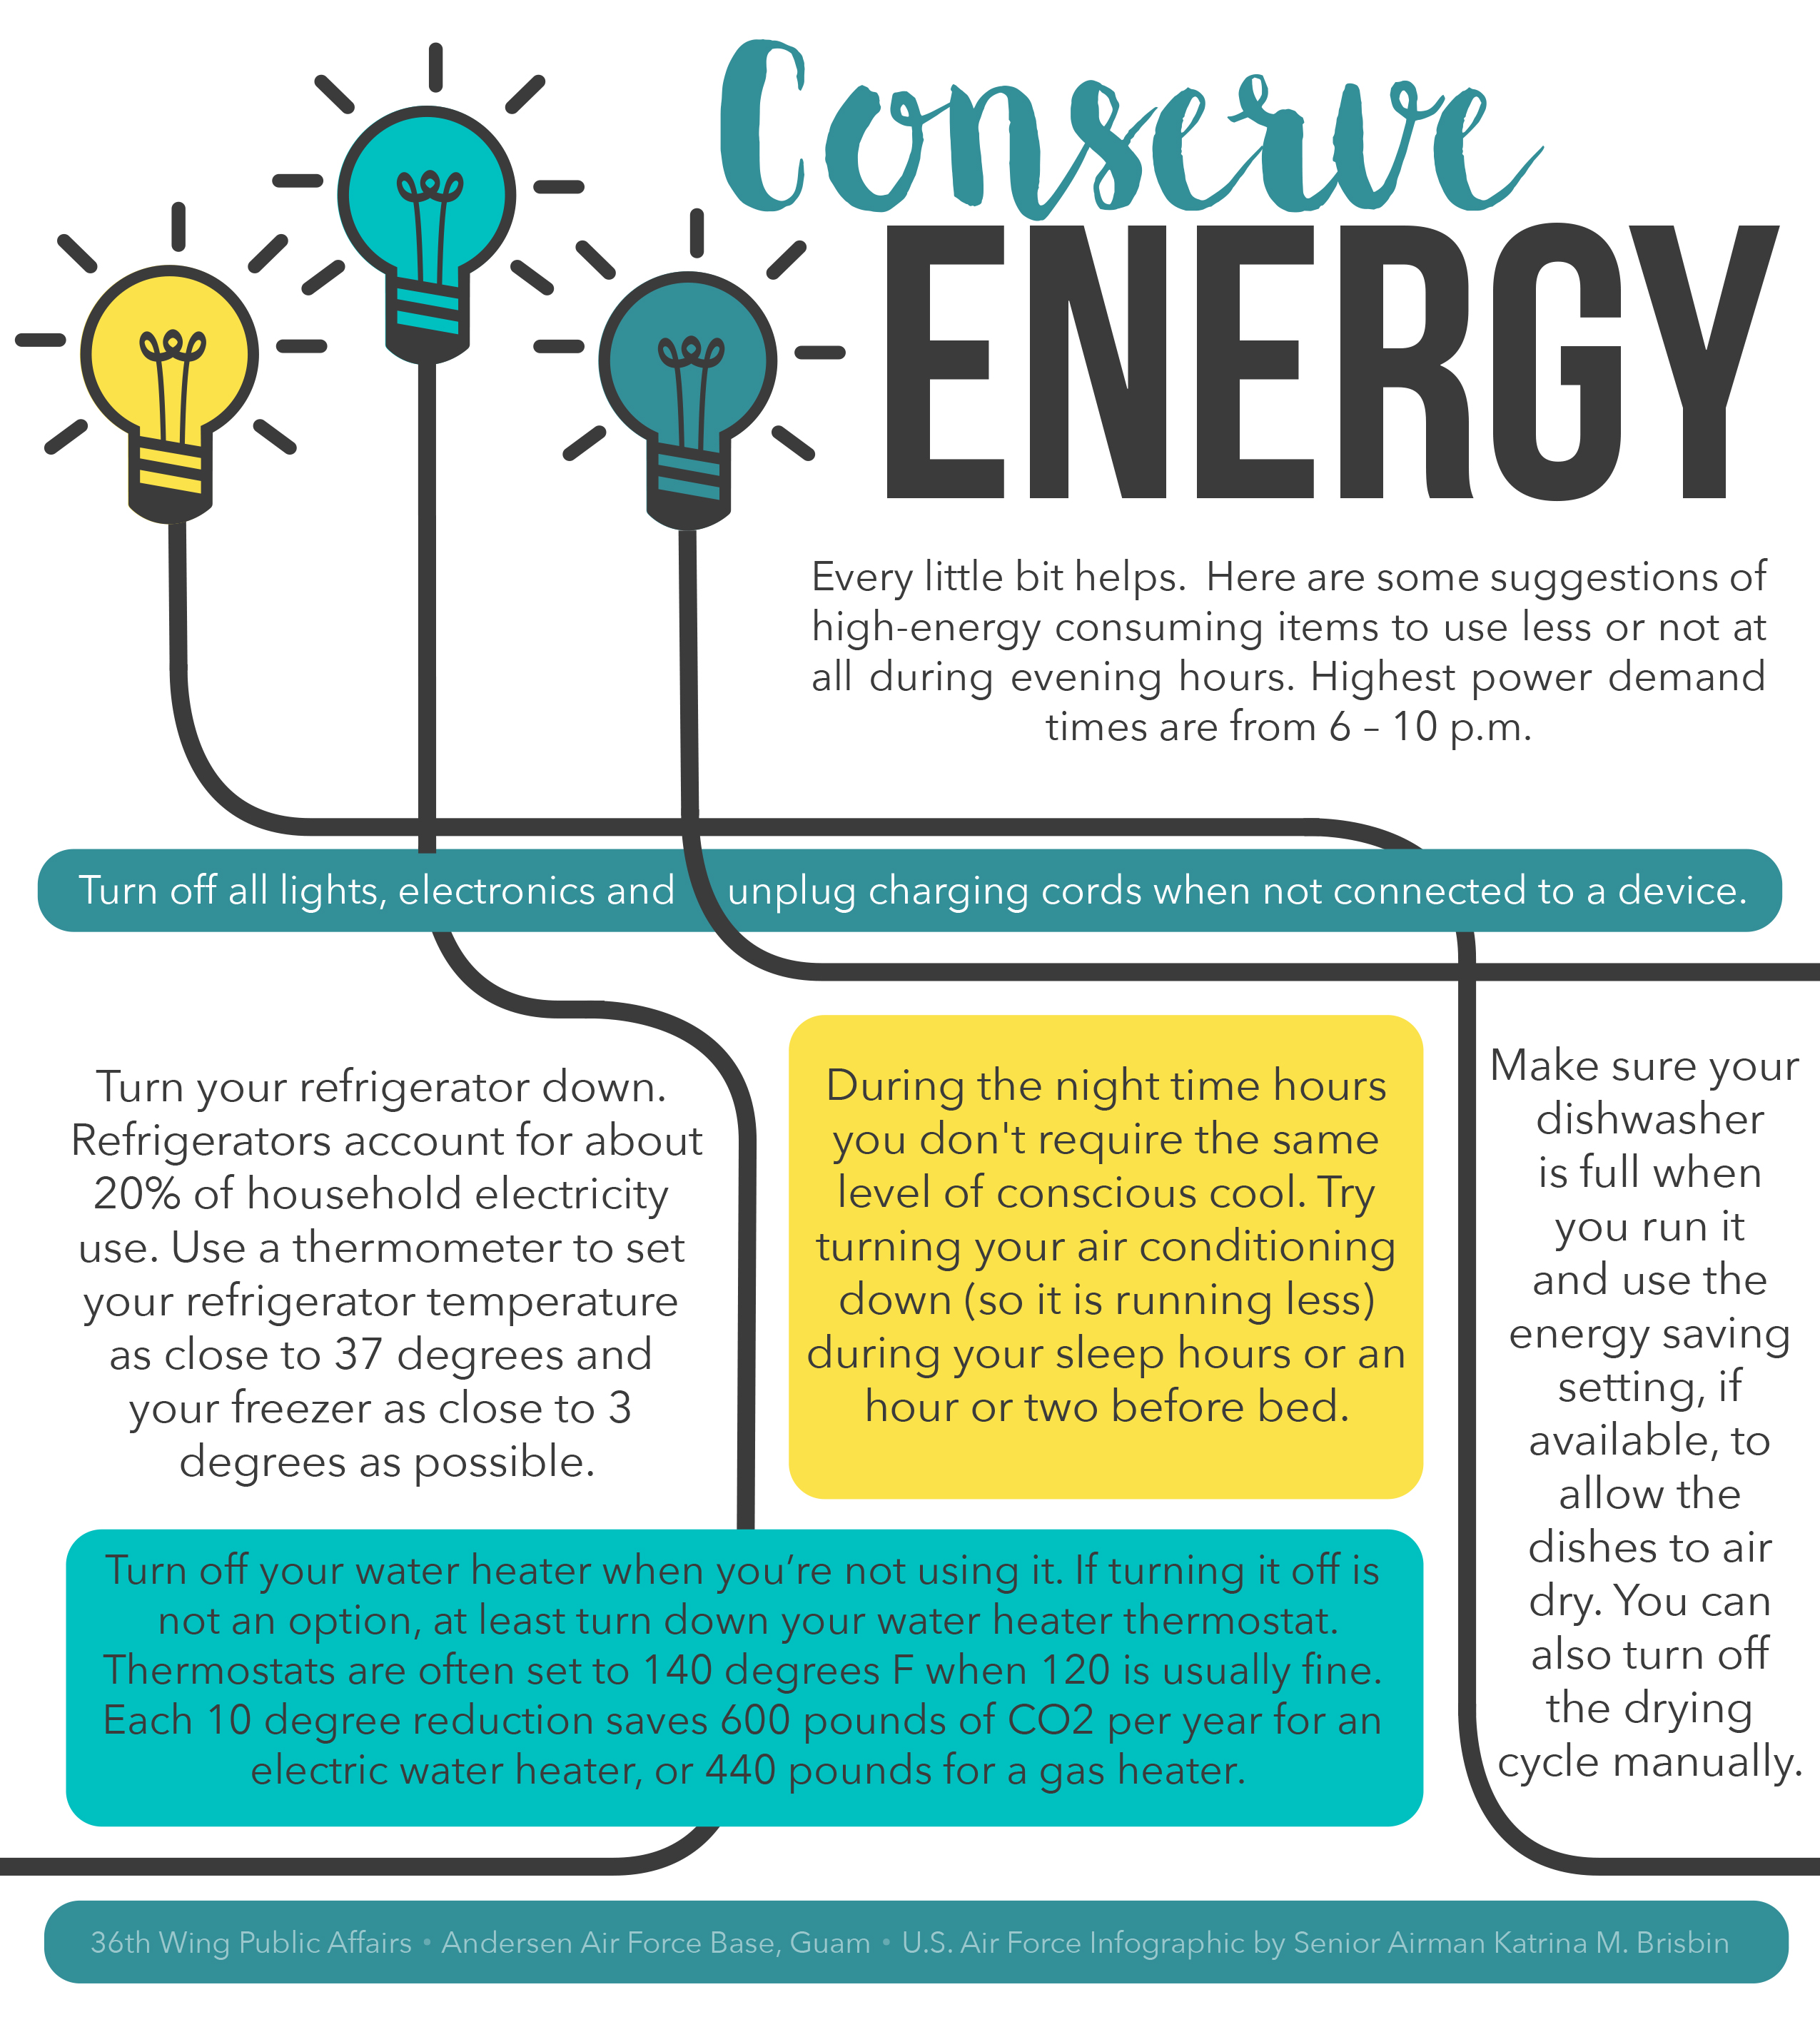 Photos for Energy conservation facts